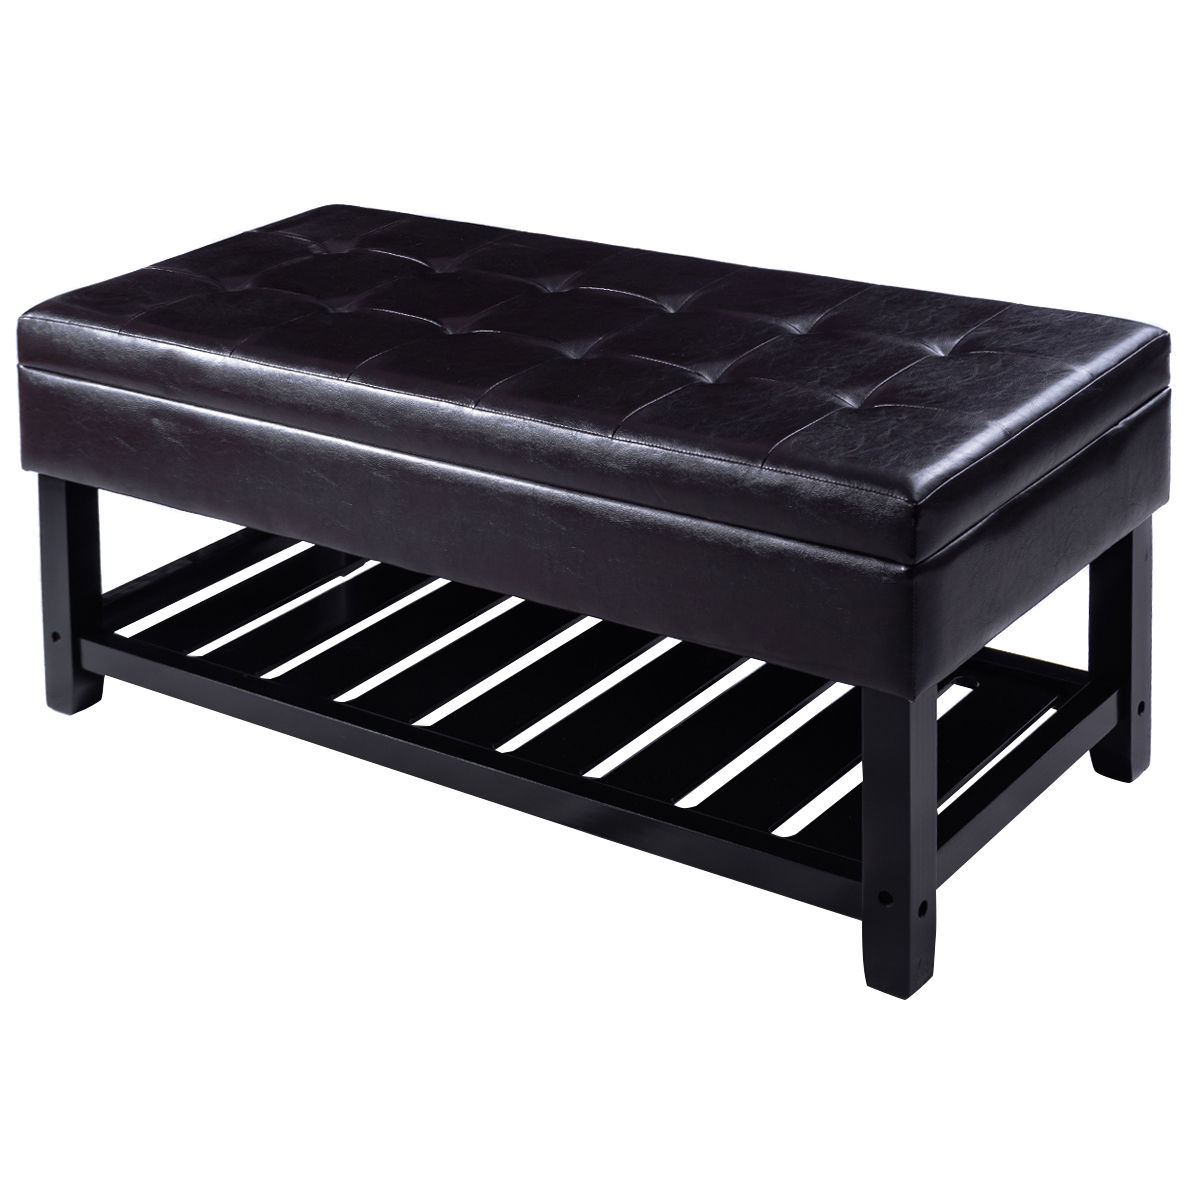 Costway Storage Bench Shoe Rack Ottoman Organizer Entryway Furniture PU Leather